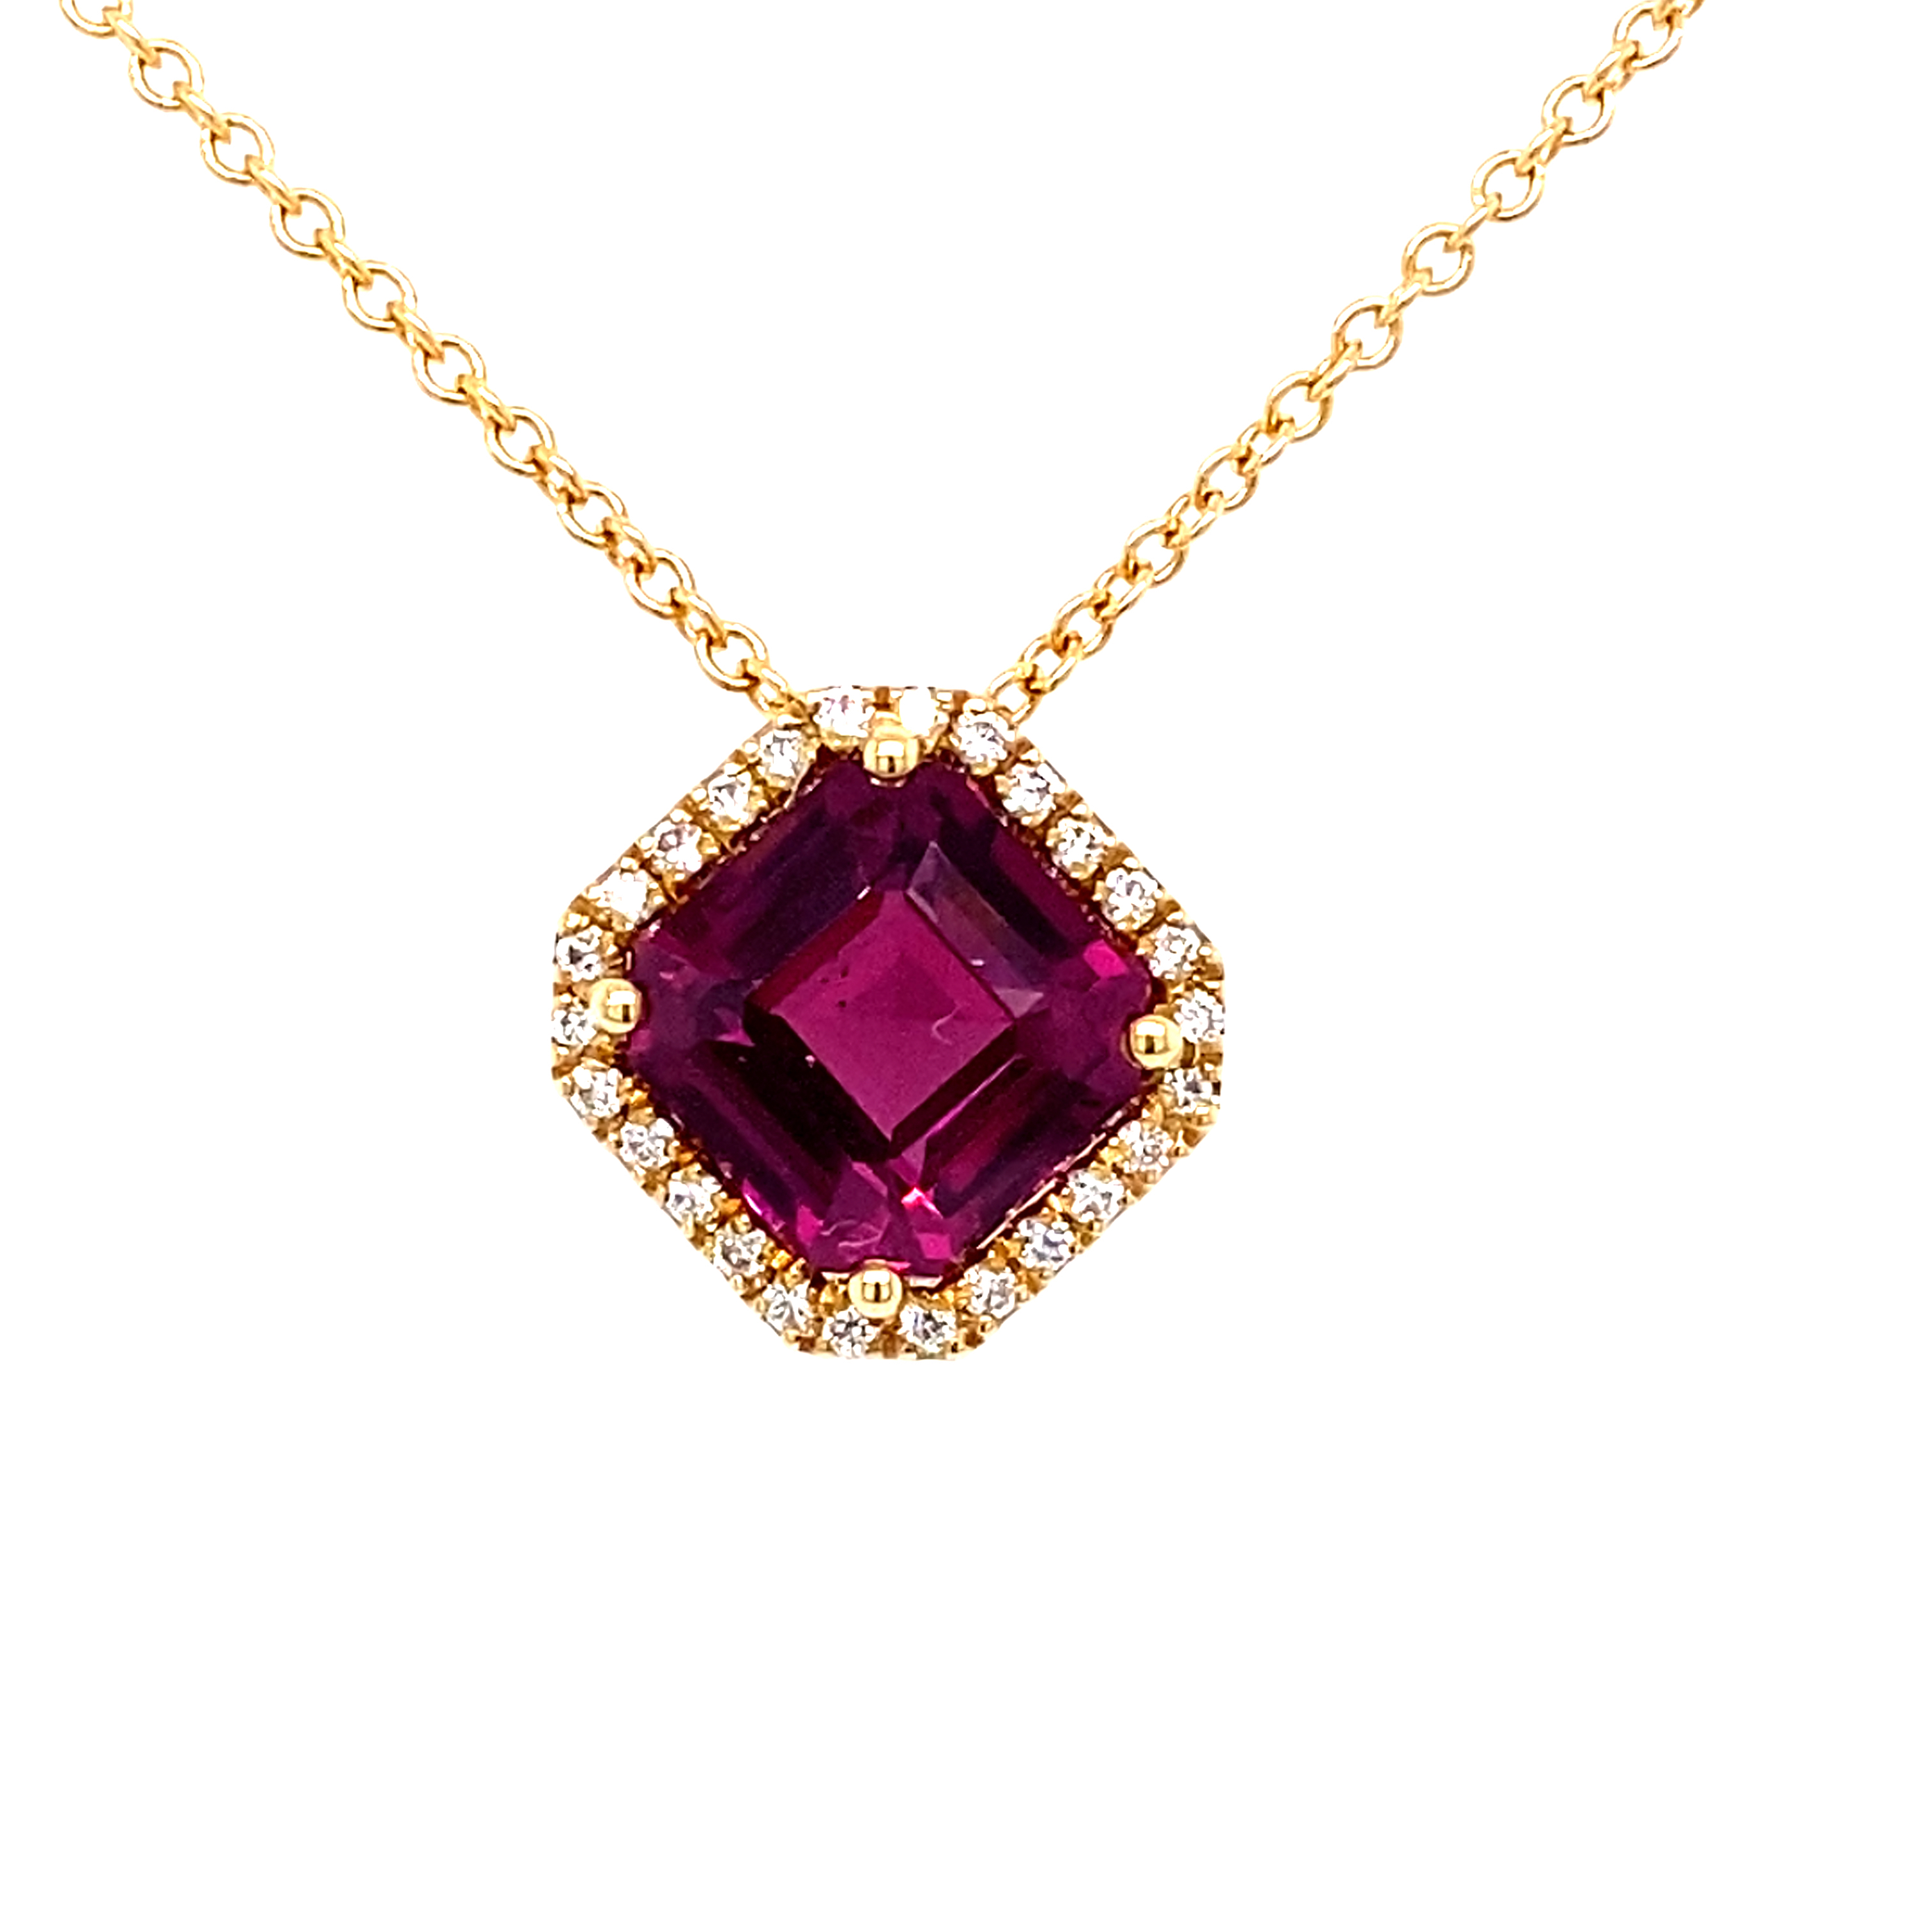 Rhodolite Garnet and Diamond Pendant 18 Carat Yellow Gold